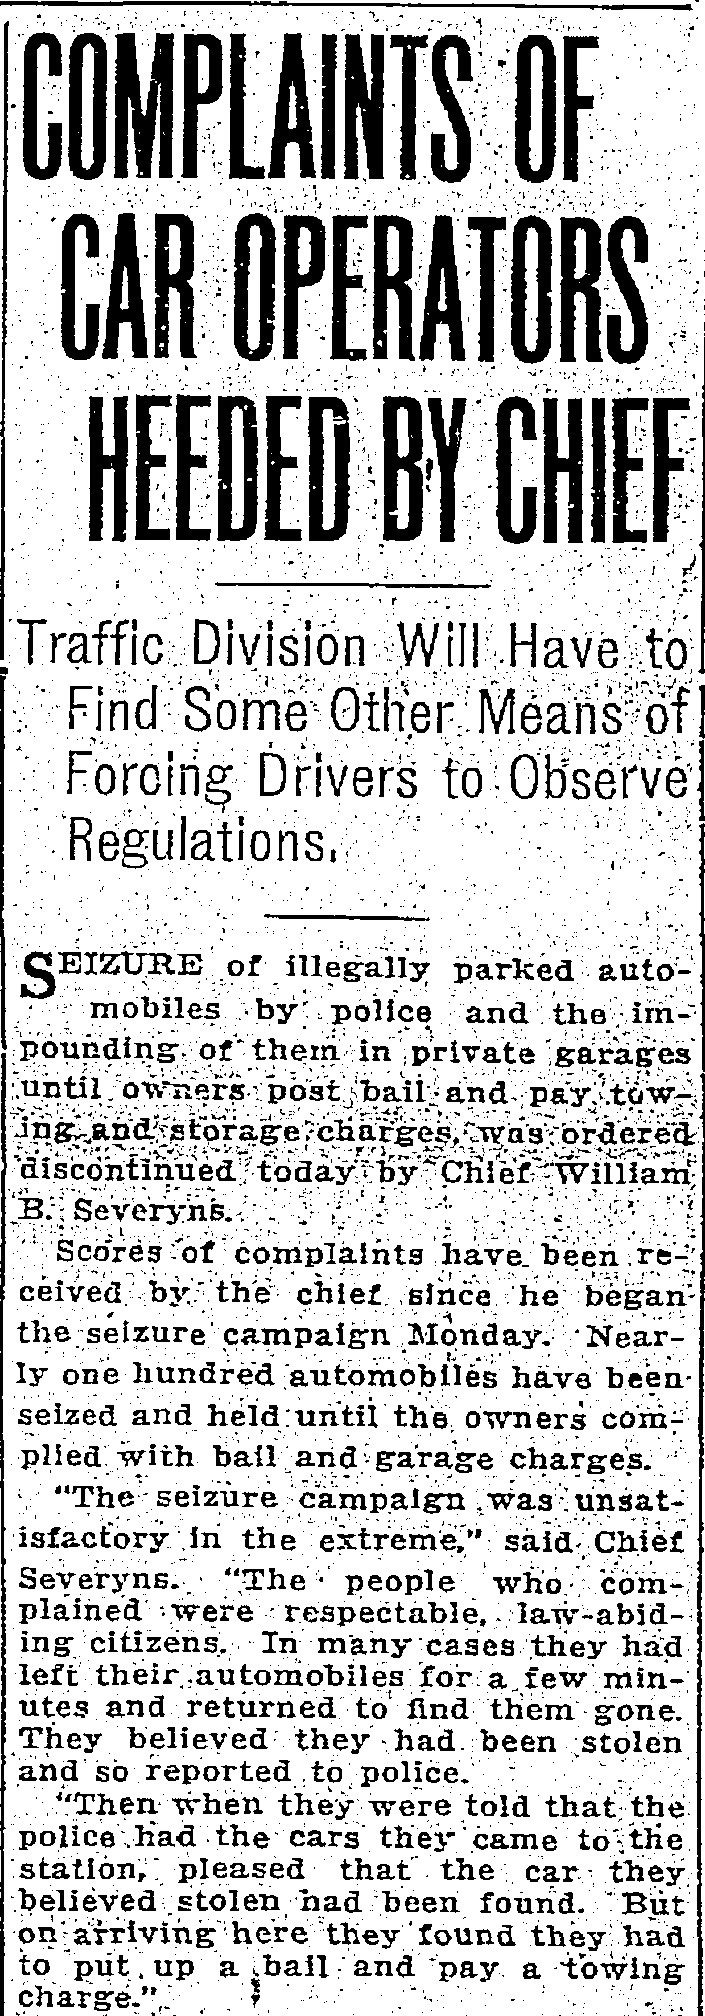 Seattle Times. October 1, 1925